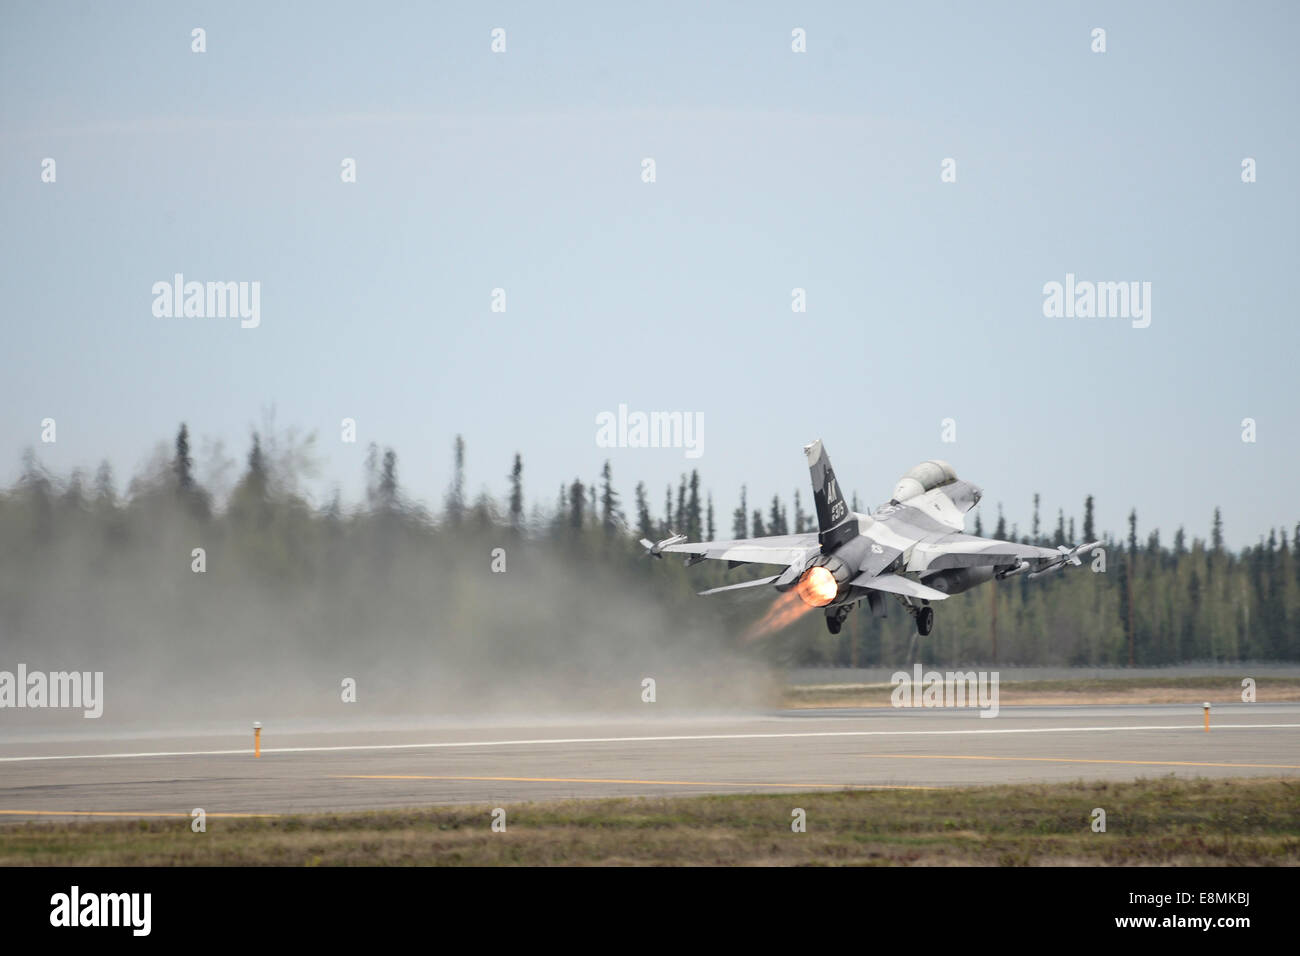 May 13, 2014 - An F-16 Fighting Falcon takes off during Red Flag Alaska 14 at Eielson Air Force Base, Alaska. Stock Photo